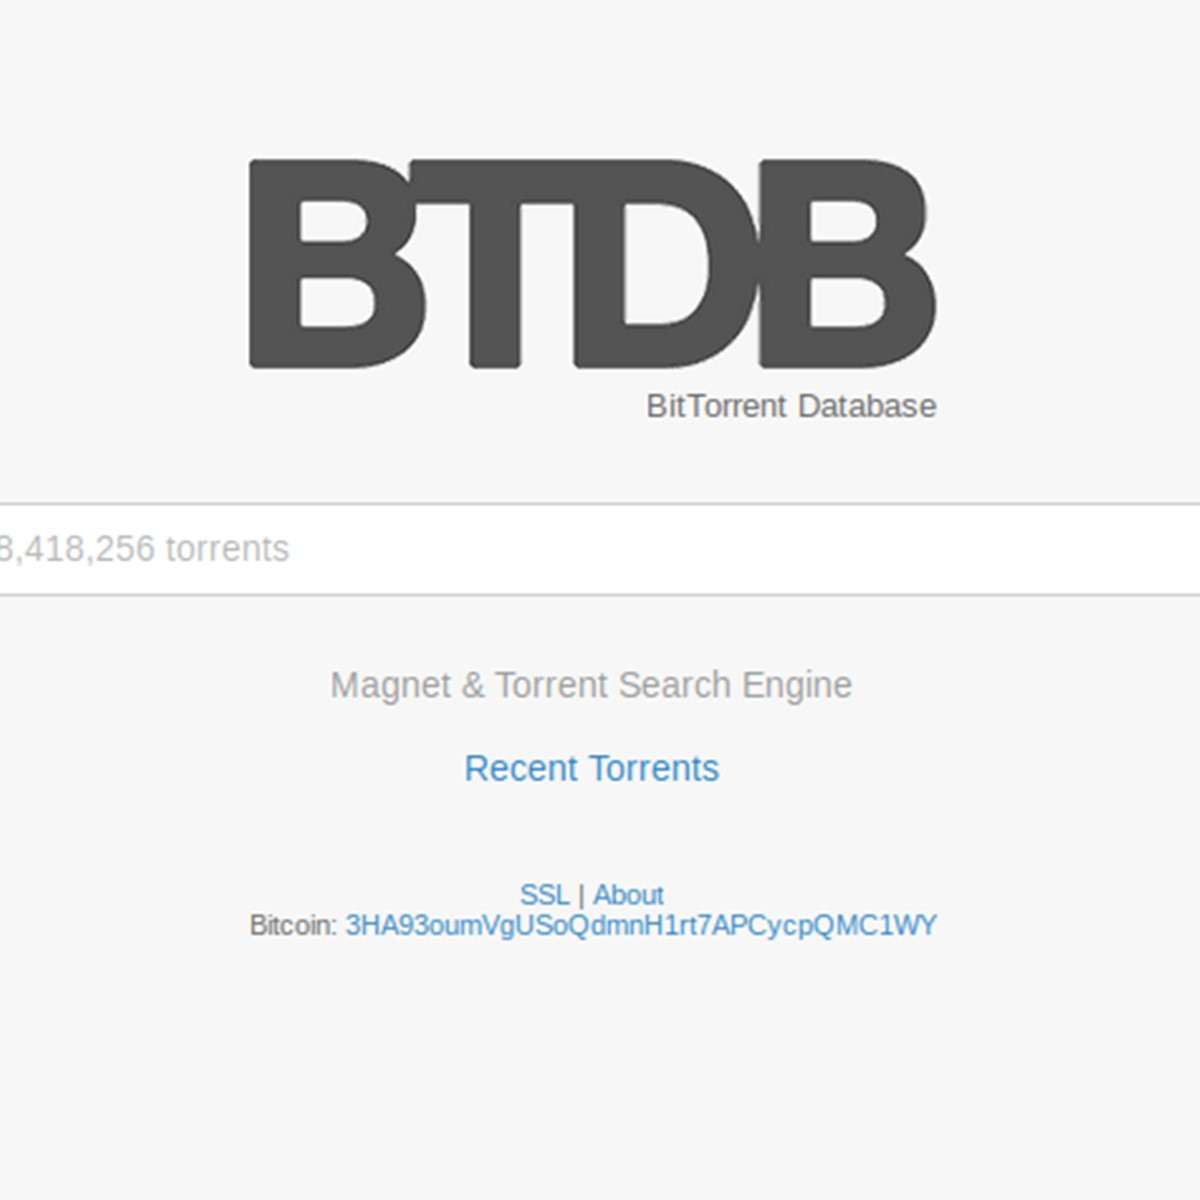 BTDB Alternatives and Similar Websites and Apps